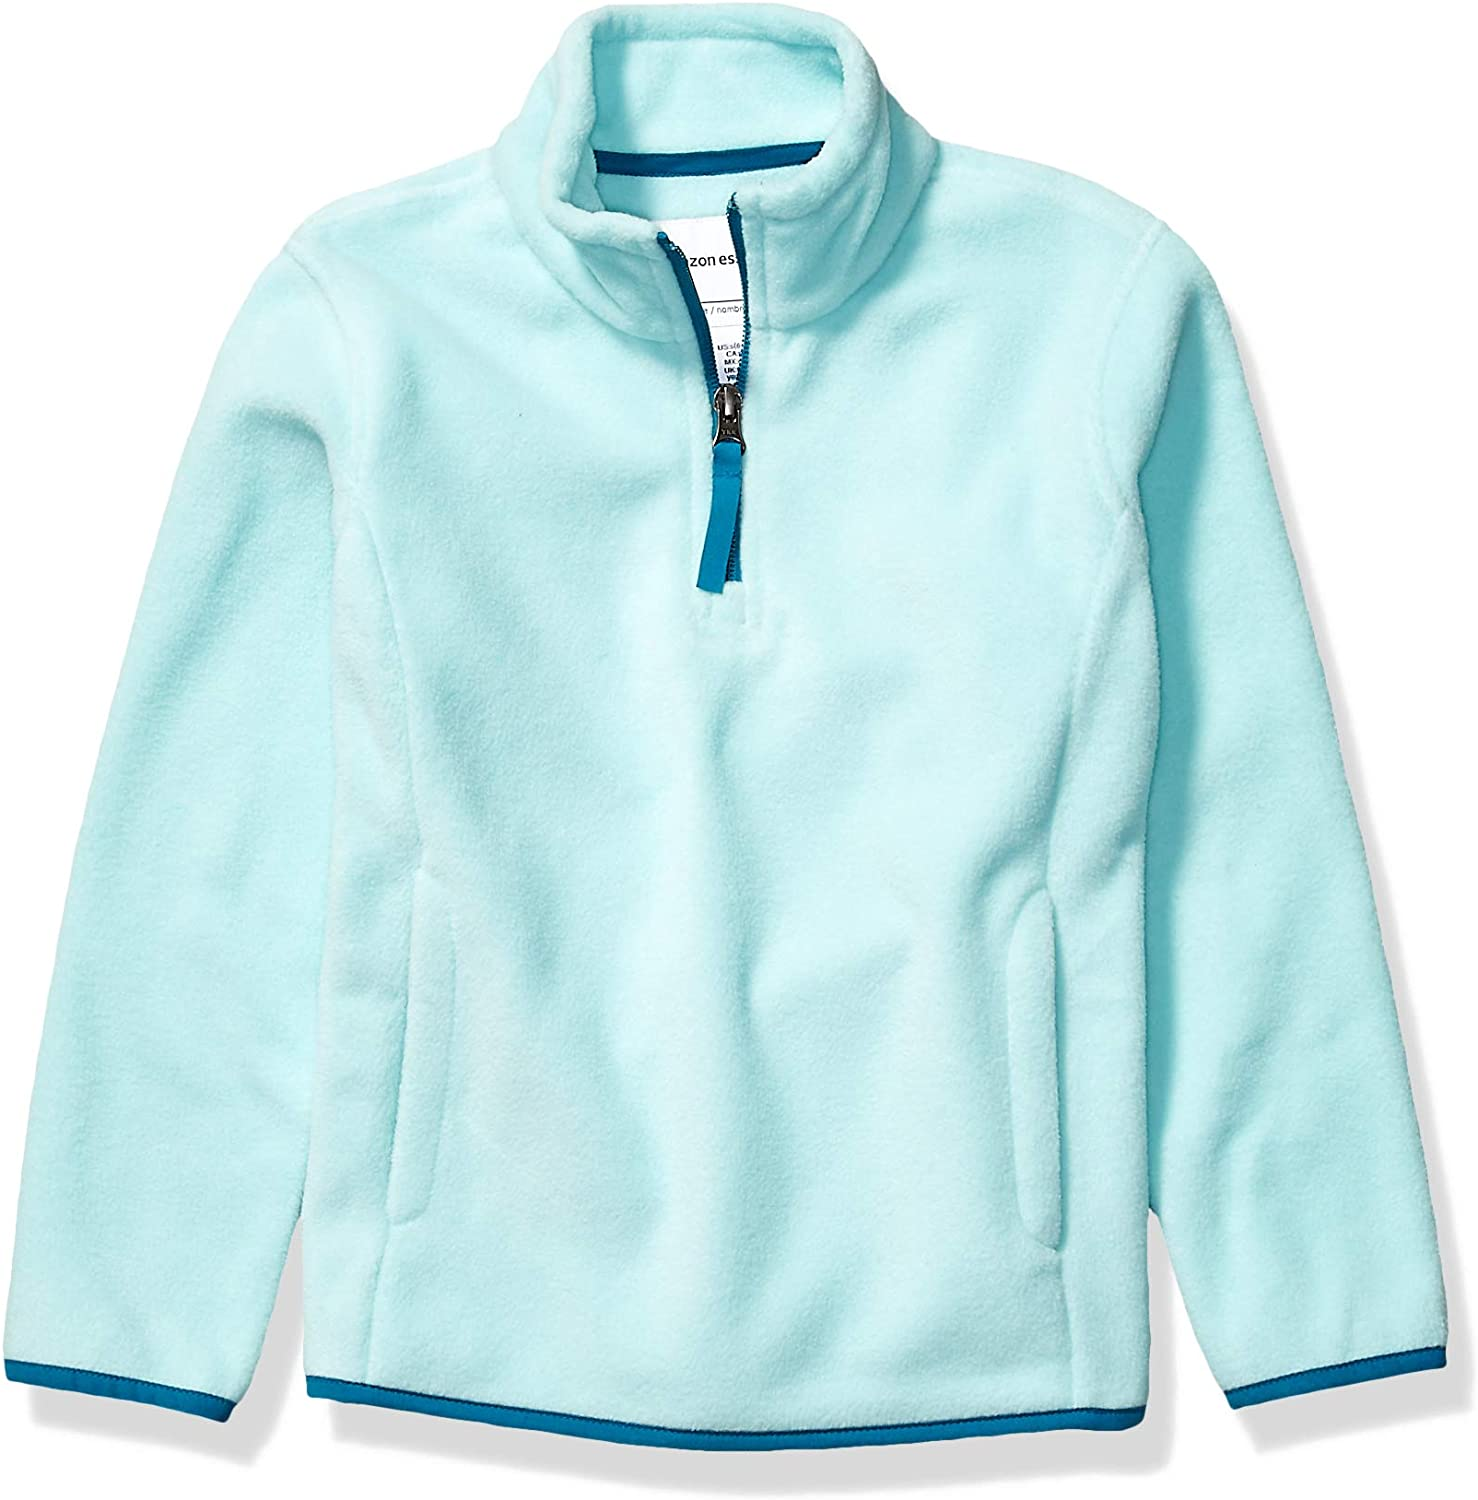 DHgate Essentials Girl's Quarter-Zip Polar Fleece Jacket